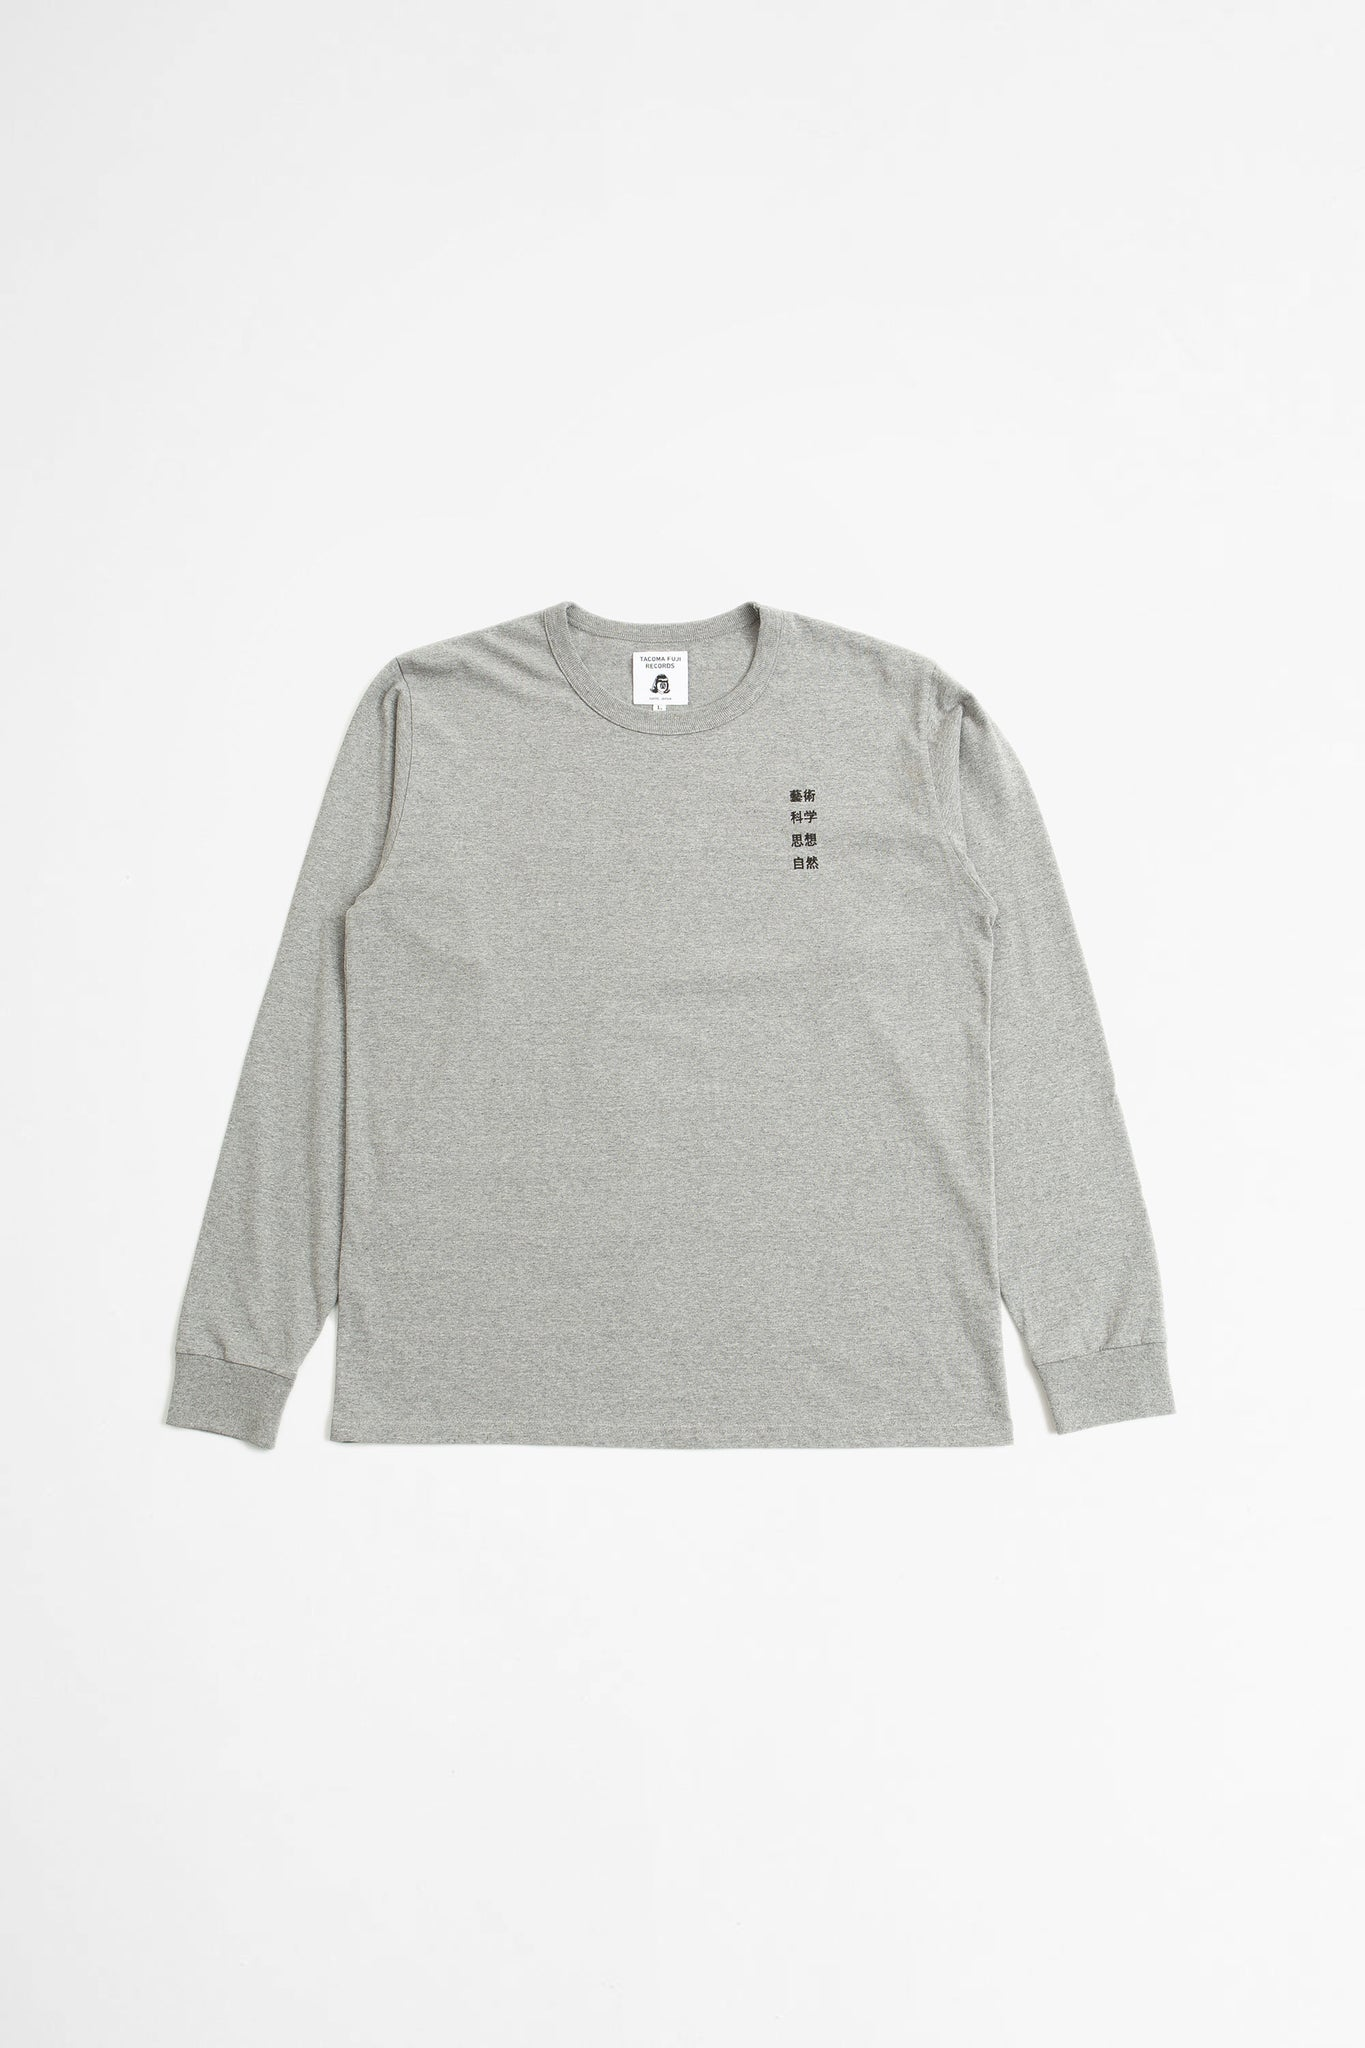 Embroidered letters  t-shirt heather gray